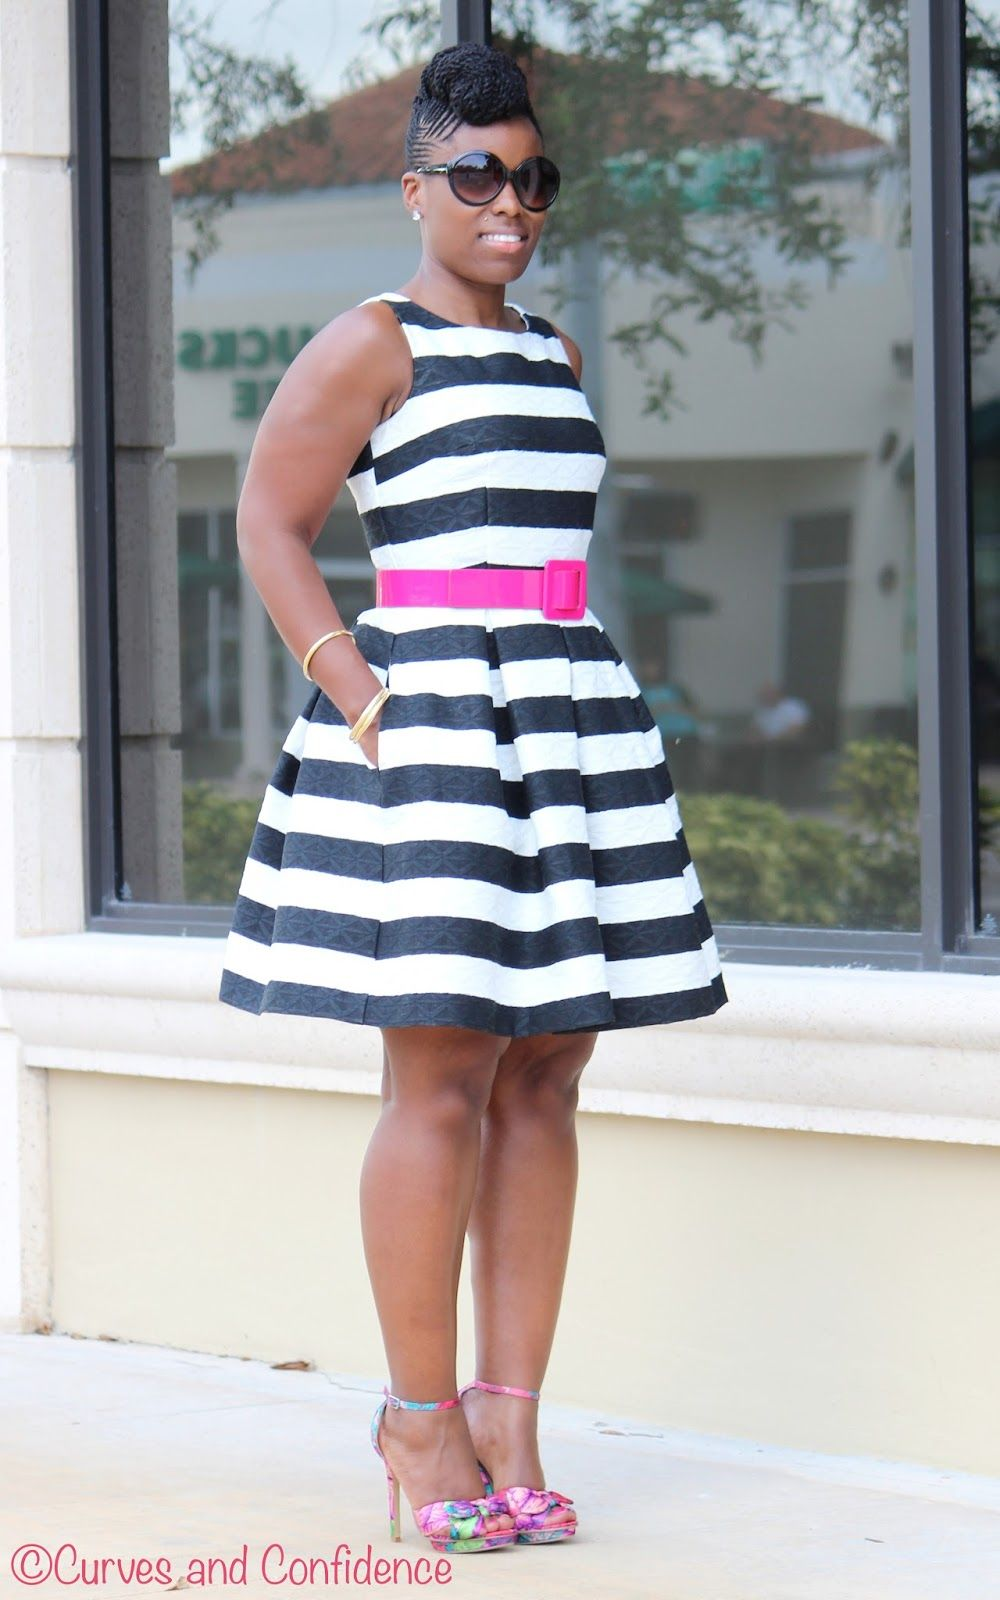 Blue white striped dress what color shoes